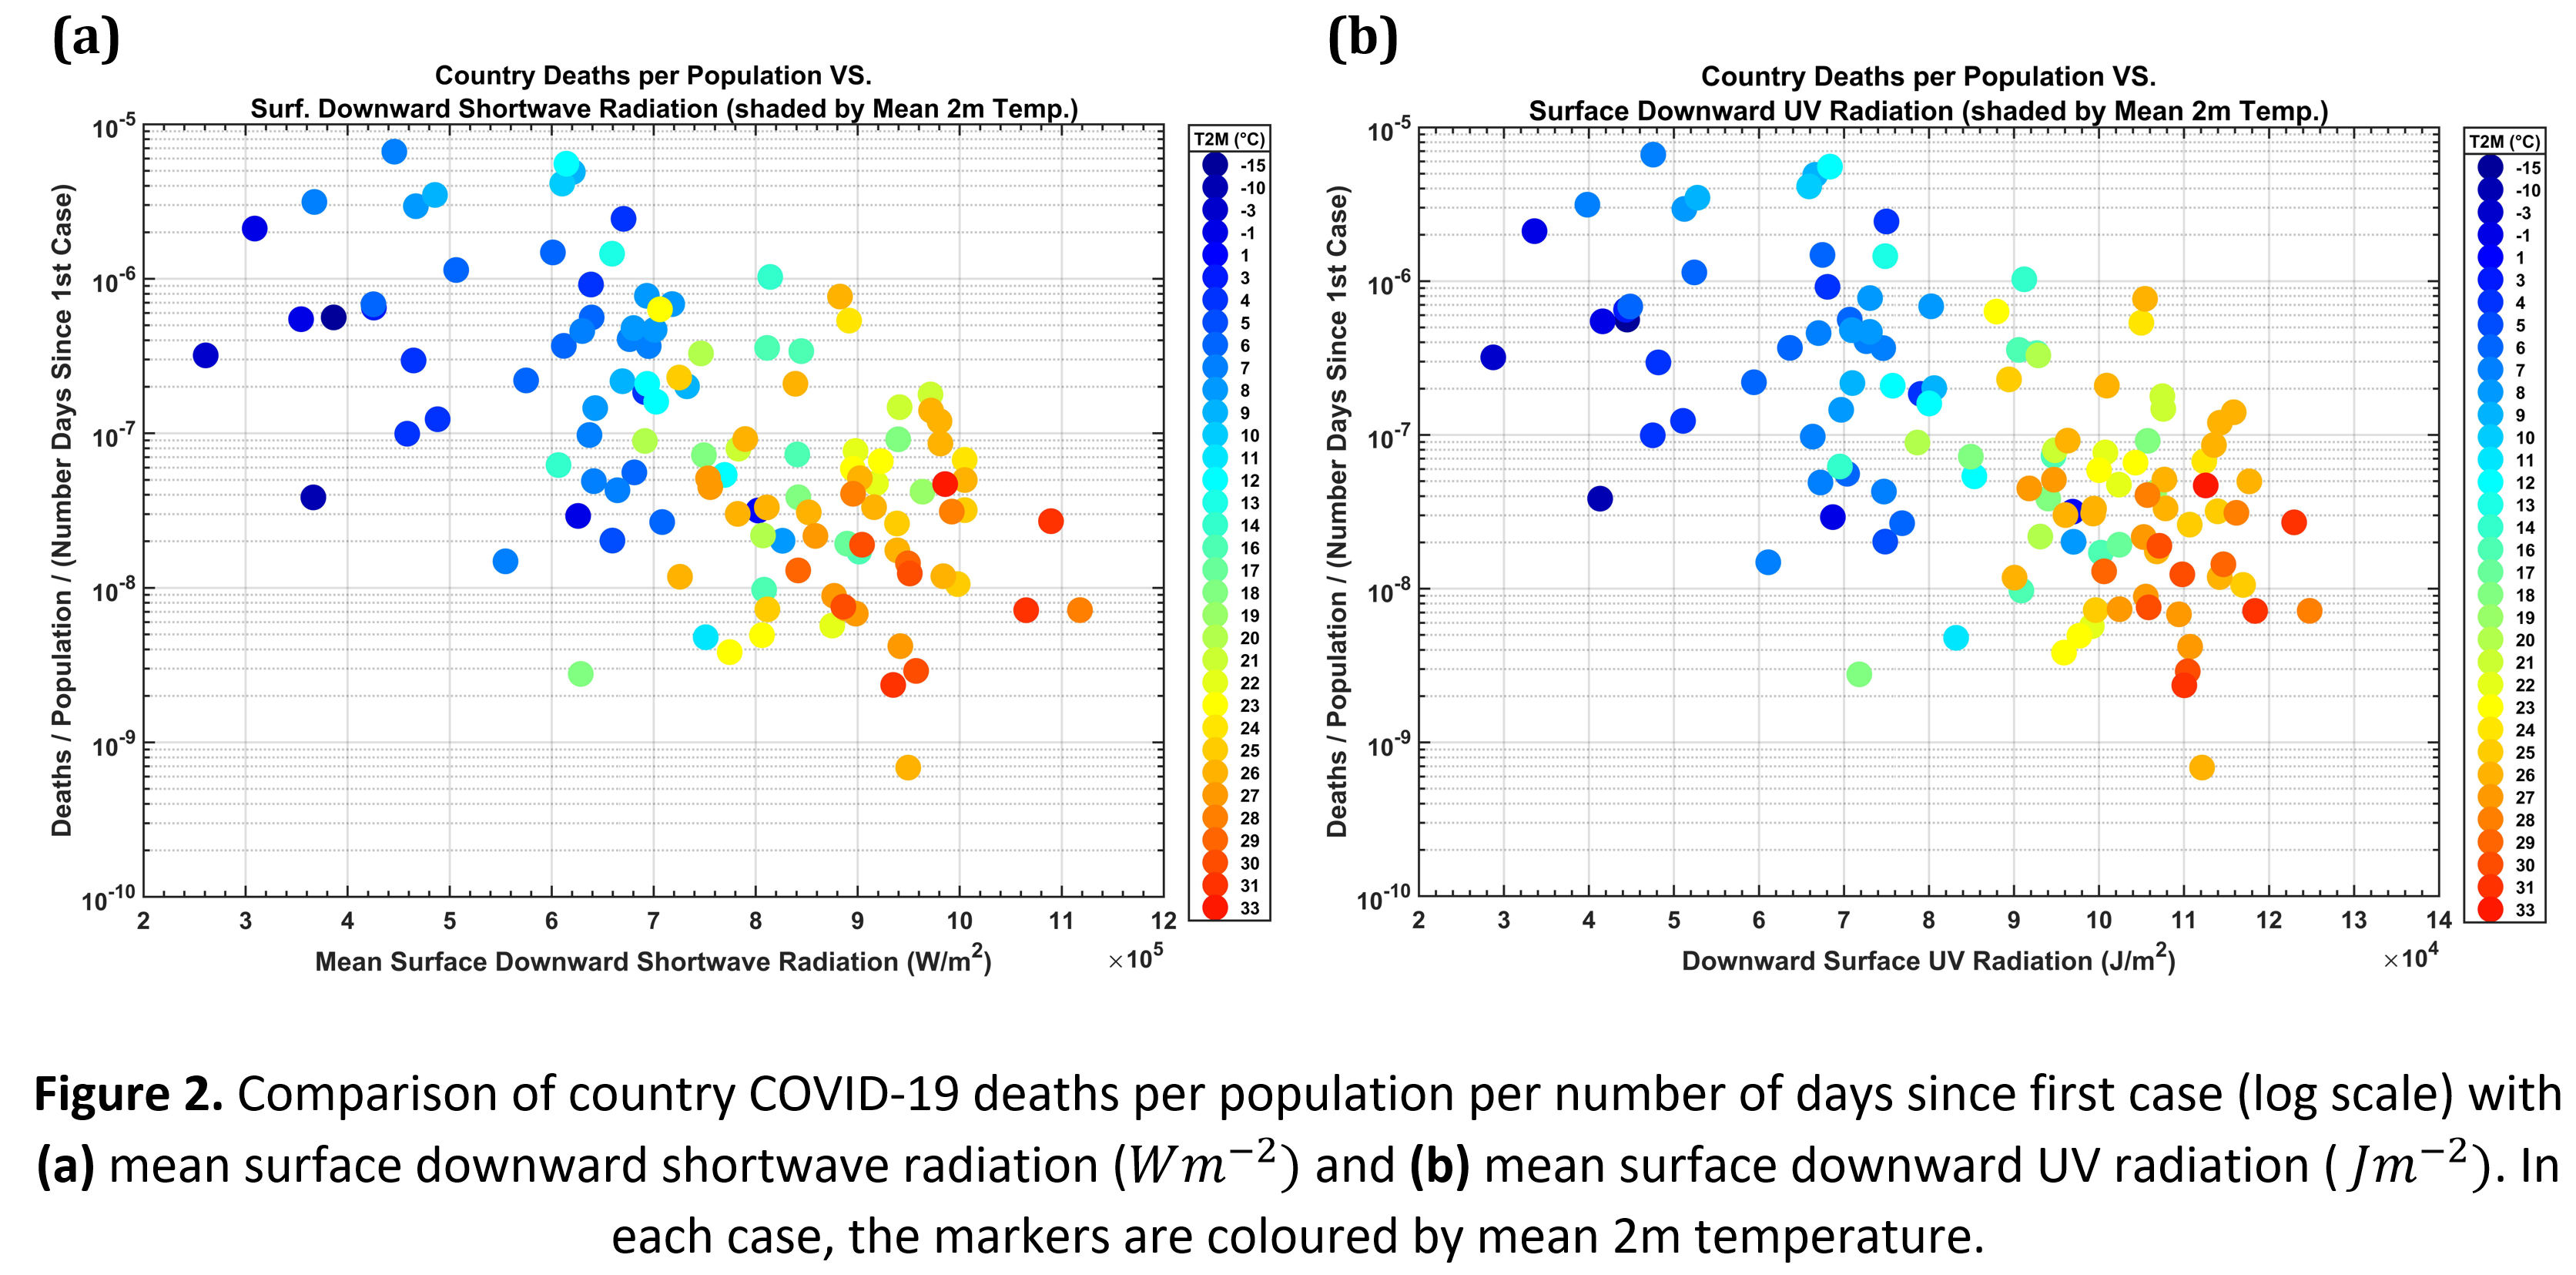 Comparison of country COVID-19 deaths per population per number of days since first case (log scale) with (a) mean surface downward shortwave radiation (Wm^(-2)) and (b) mean surface downward UV radiation ( Jm^(-2)). In each case, the markers are coloured by mean 2m temperature.